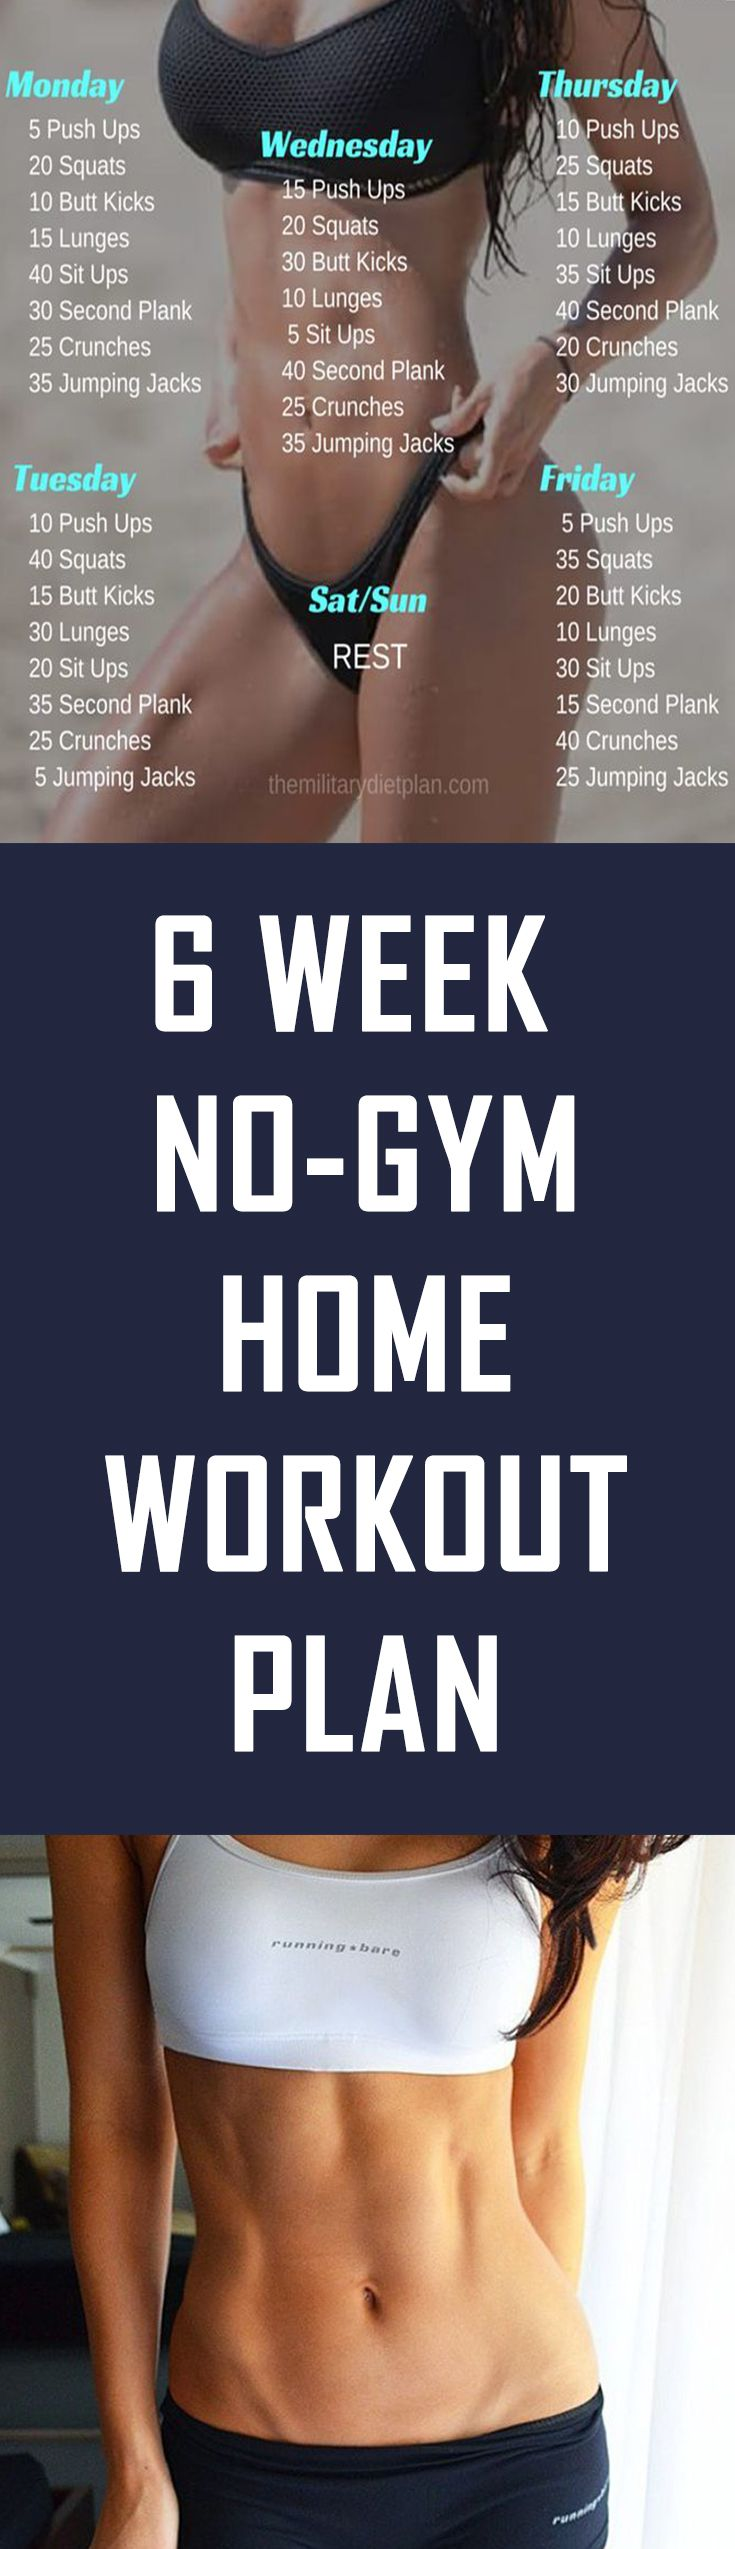 Photo of 6 Week No-Gym Home Workout Plan